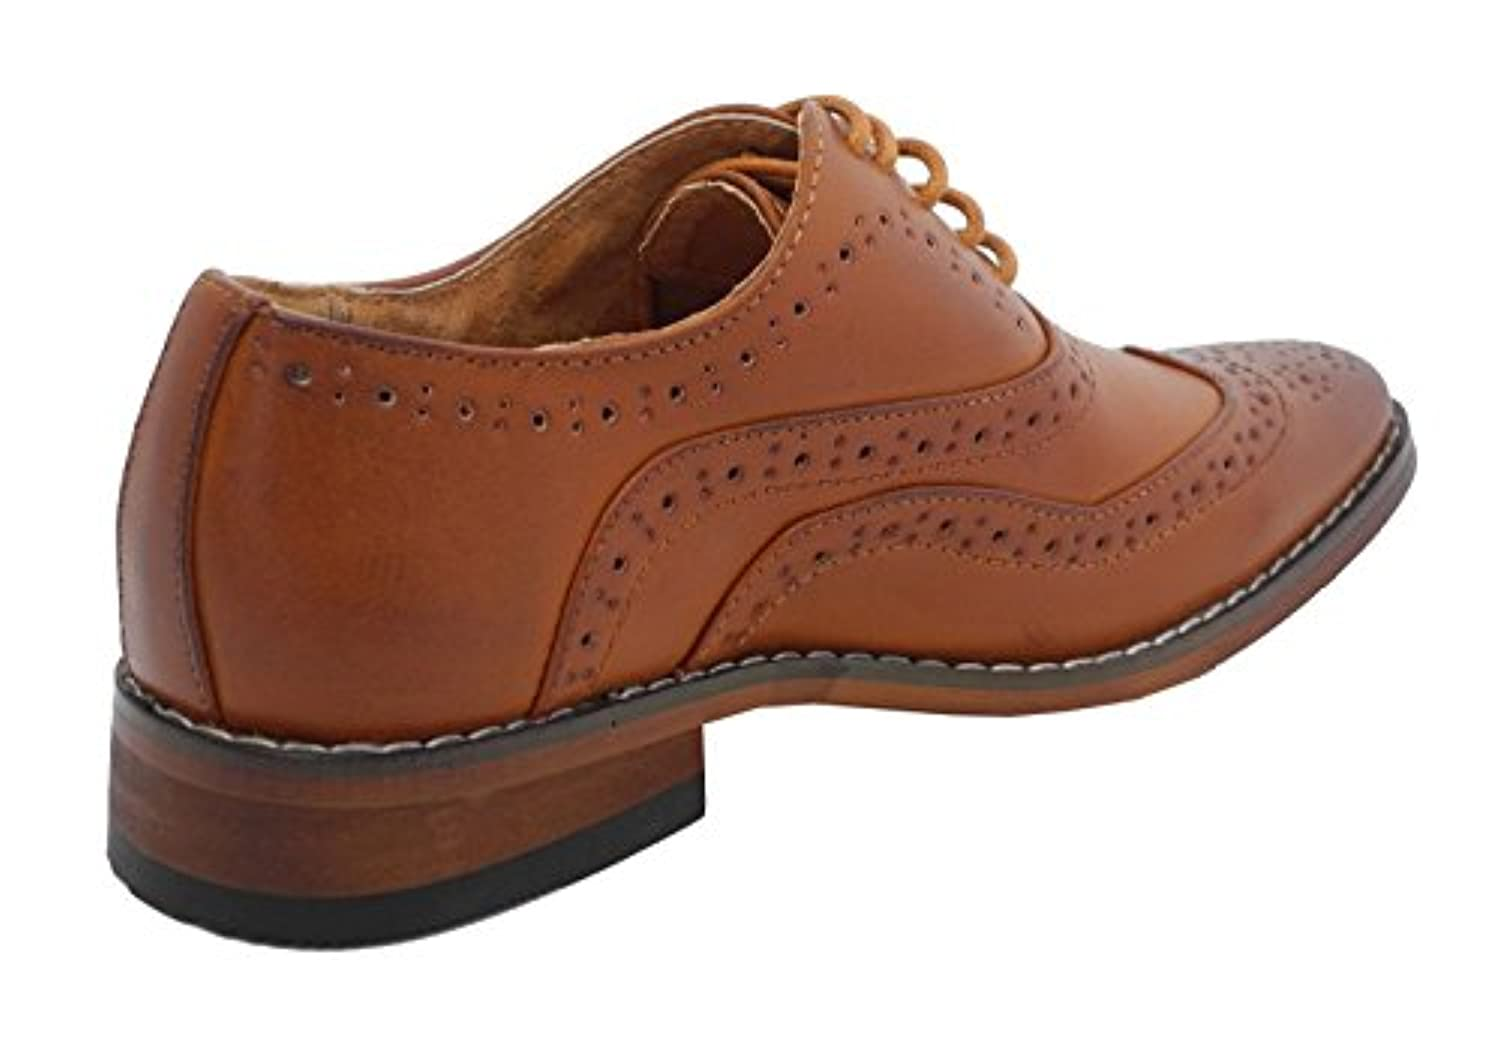 Boys Tan Brown Leather Lined Lace Up Smart Brogues Shoes Size 1